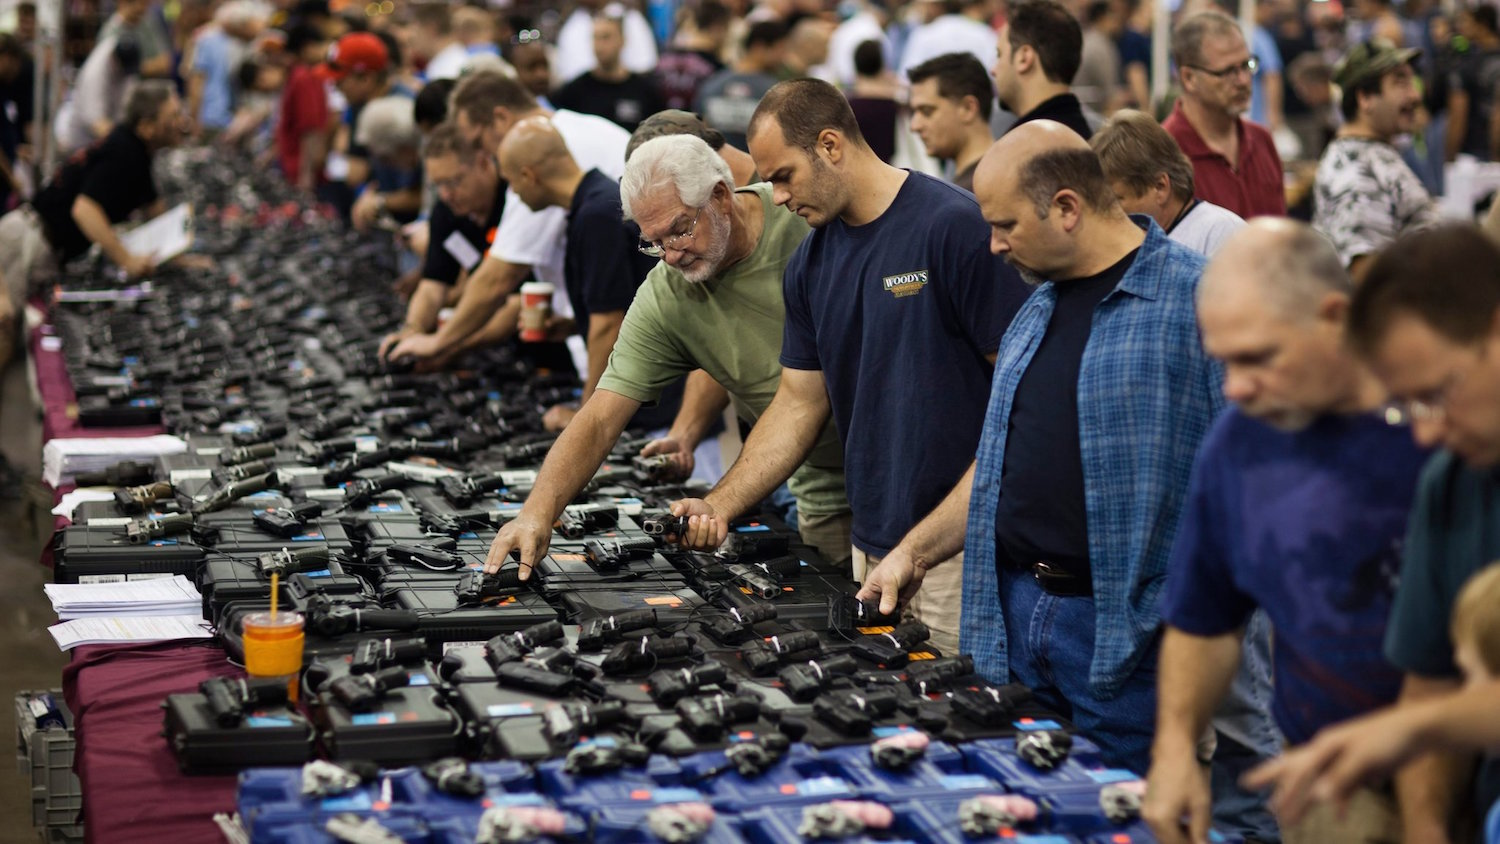 Record Black Friday gun sales, not polls, confirm historic support for gun rights in U.S.